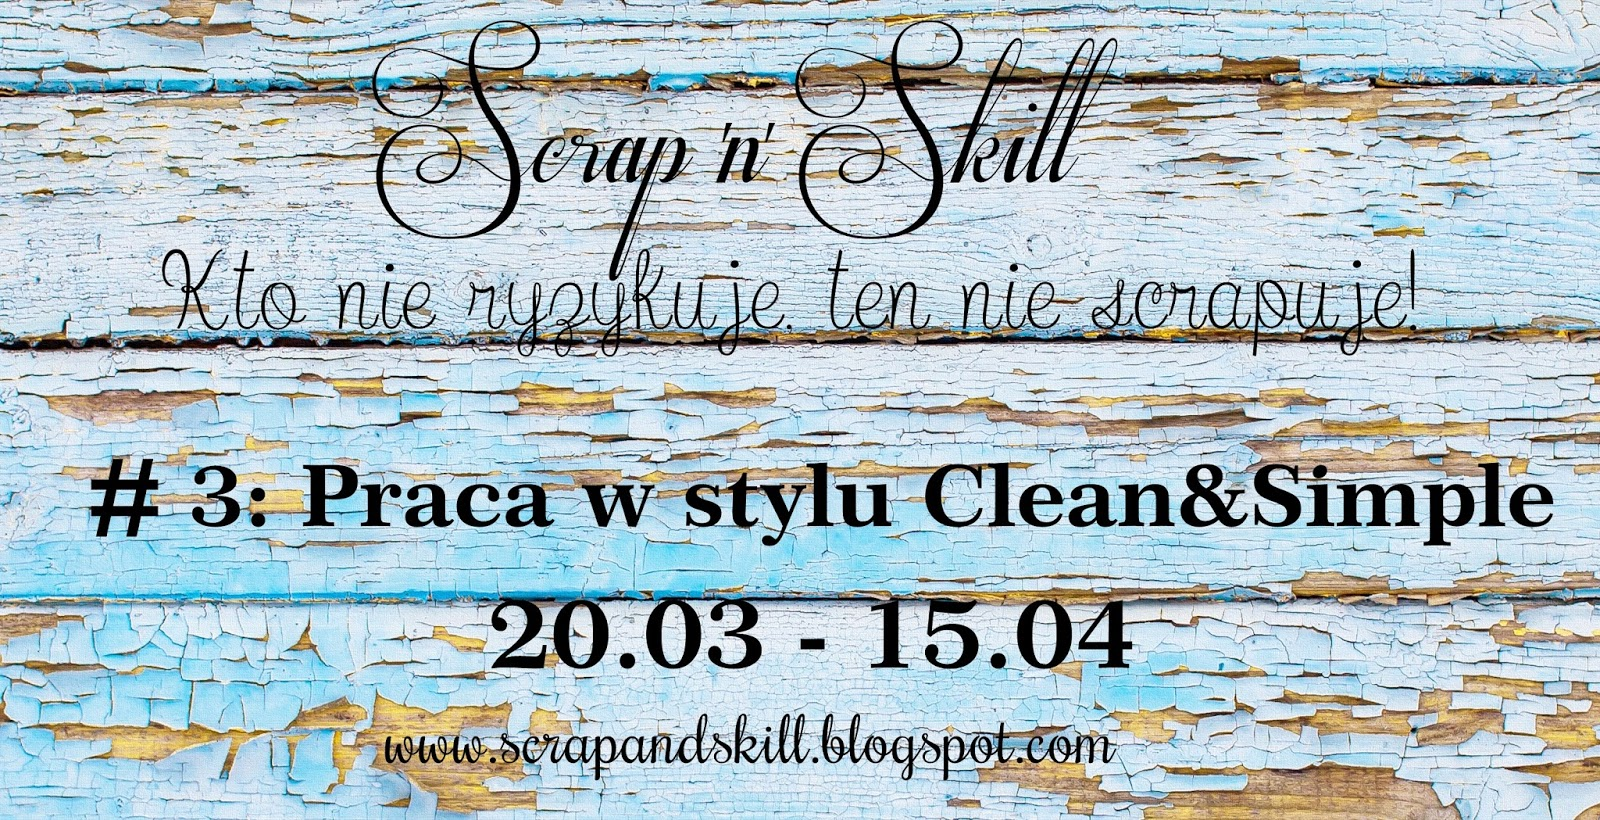 http://scrapandskill.blogspot.com/2015/03/wyzwanie-3-clean-simple.html